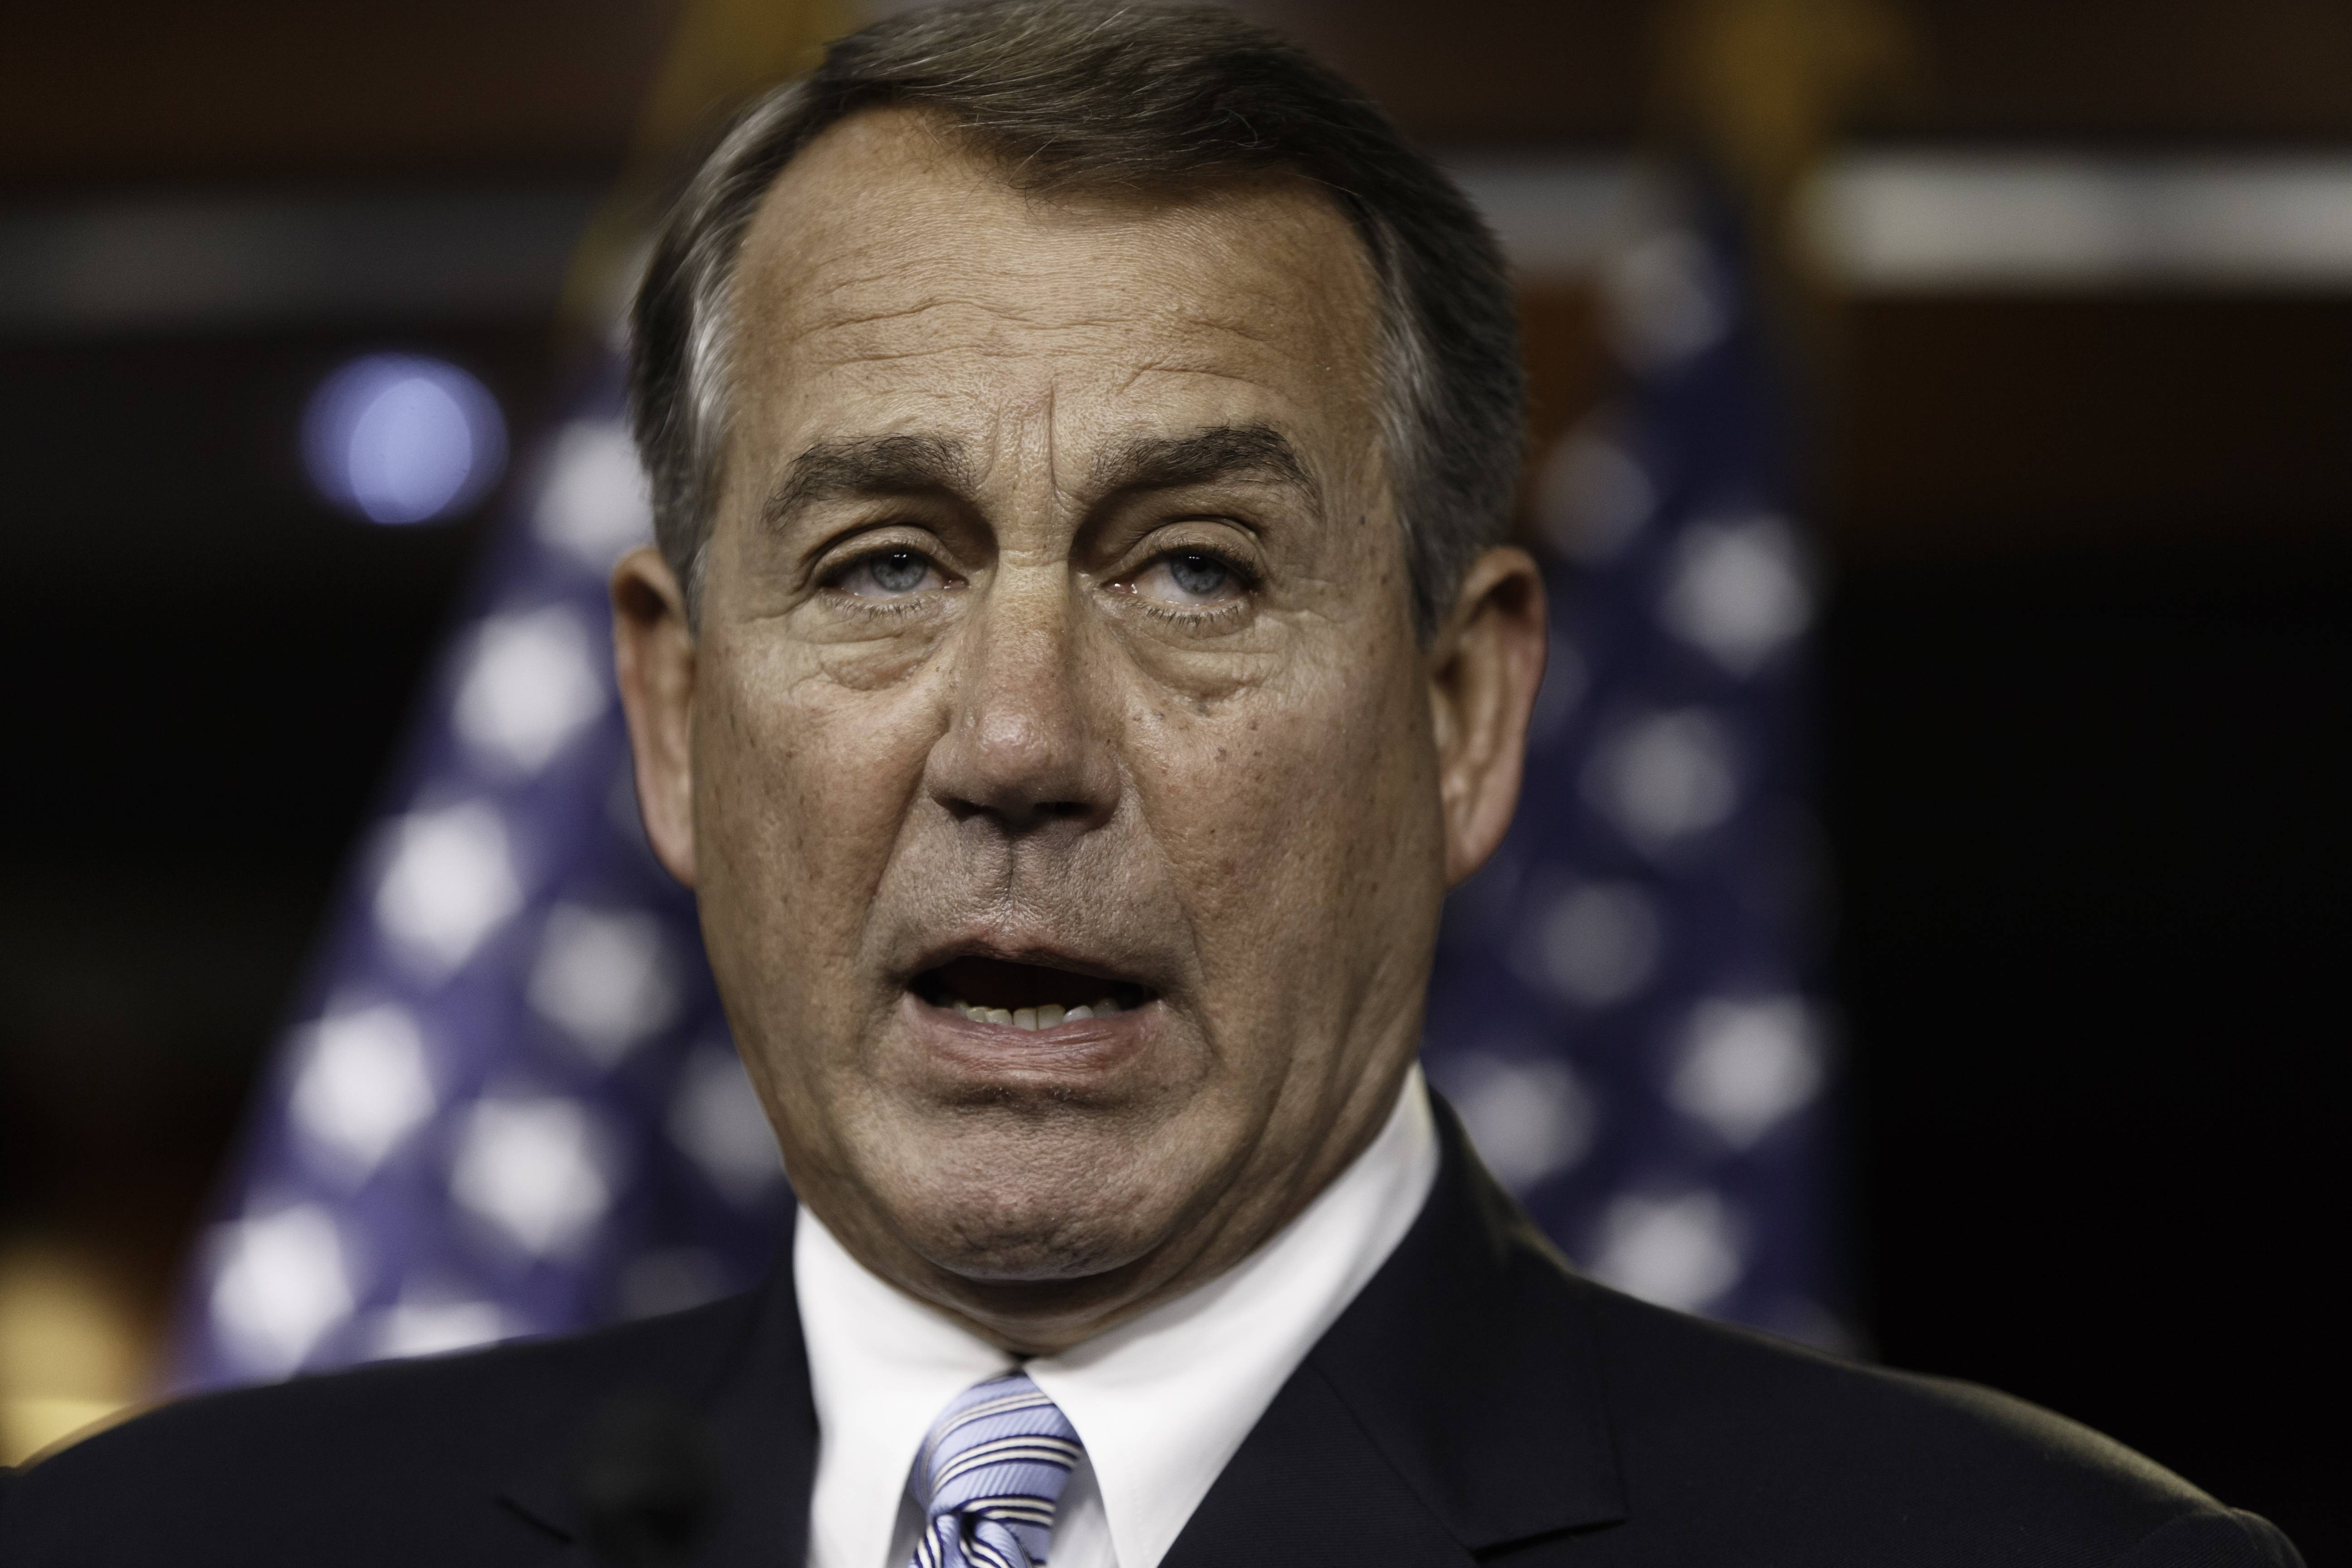 Speaker of the House John Boehner said Wednesday that the Republican-controlled House will file an election-year lawsuit accusing President Barack Obama of failing to carry out the laws passed by Congress. He provided no details of the specific claims to be made in the suit.